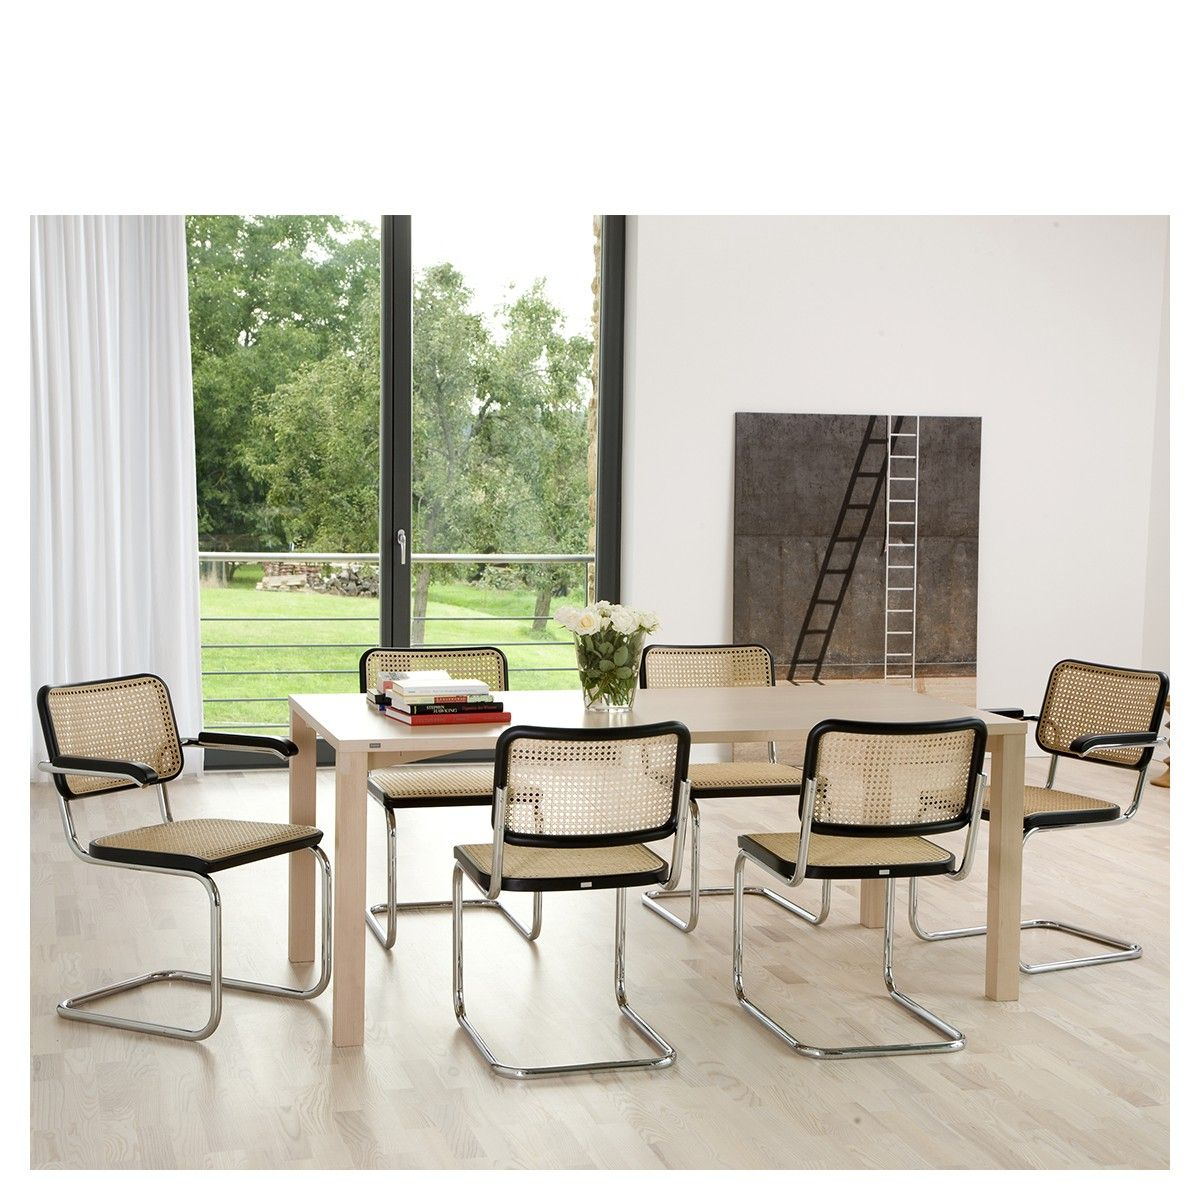 Cesca chairs by Marcel Bauer